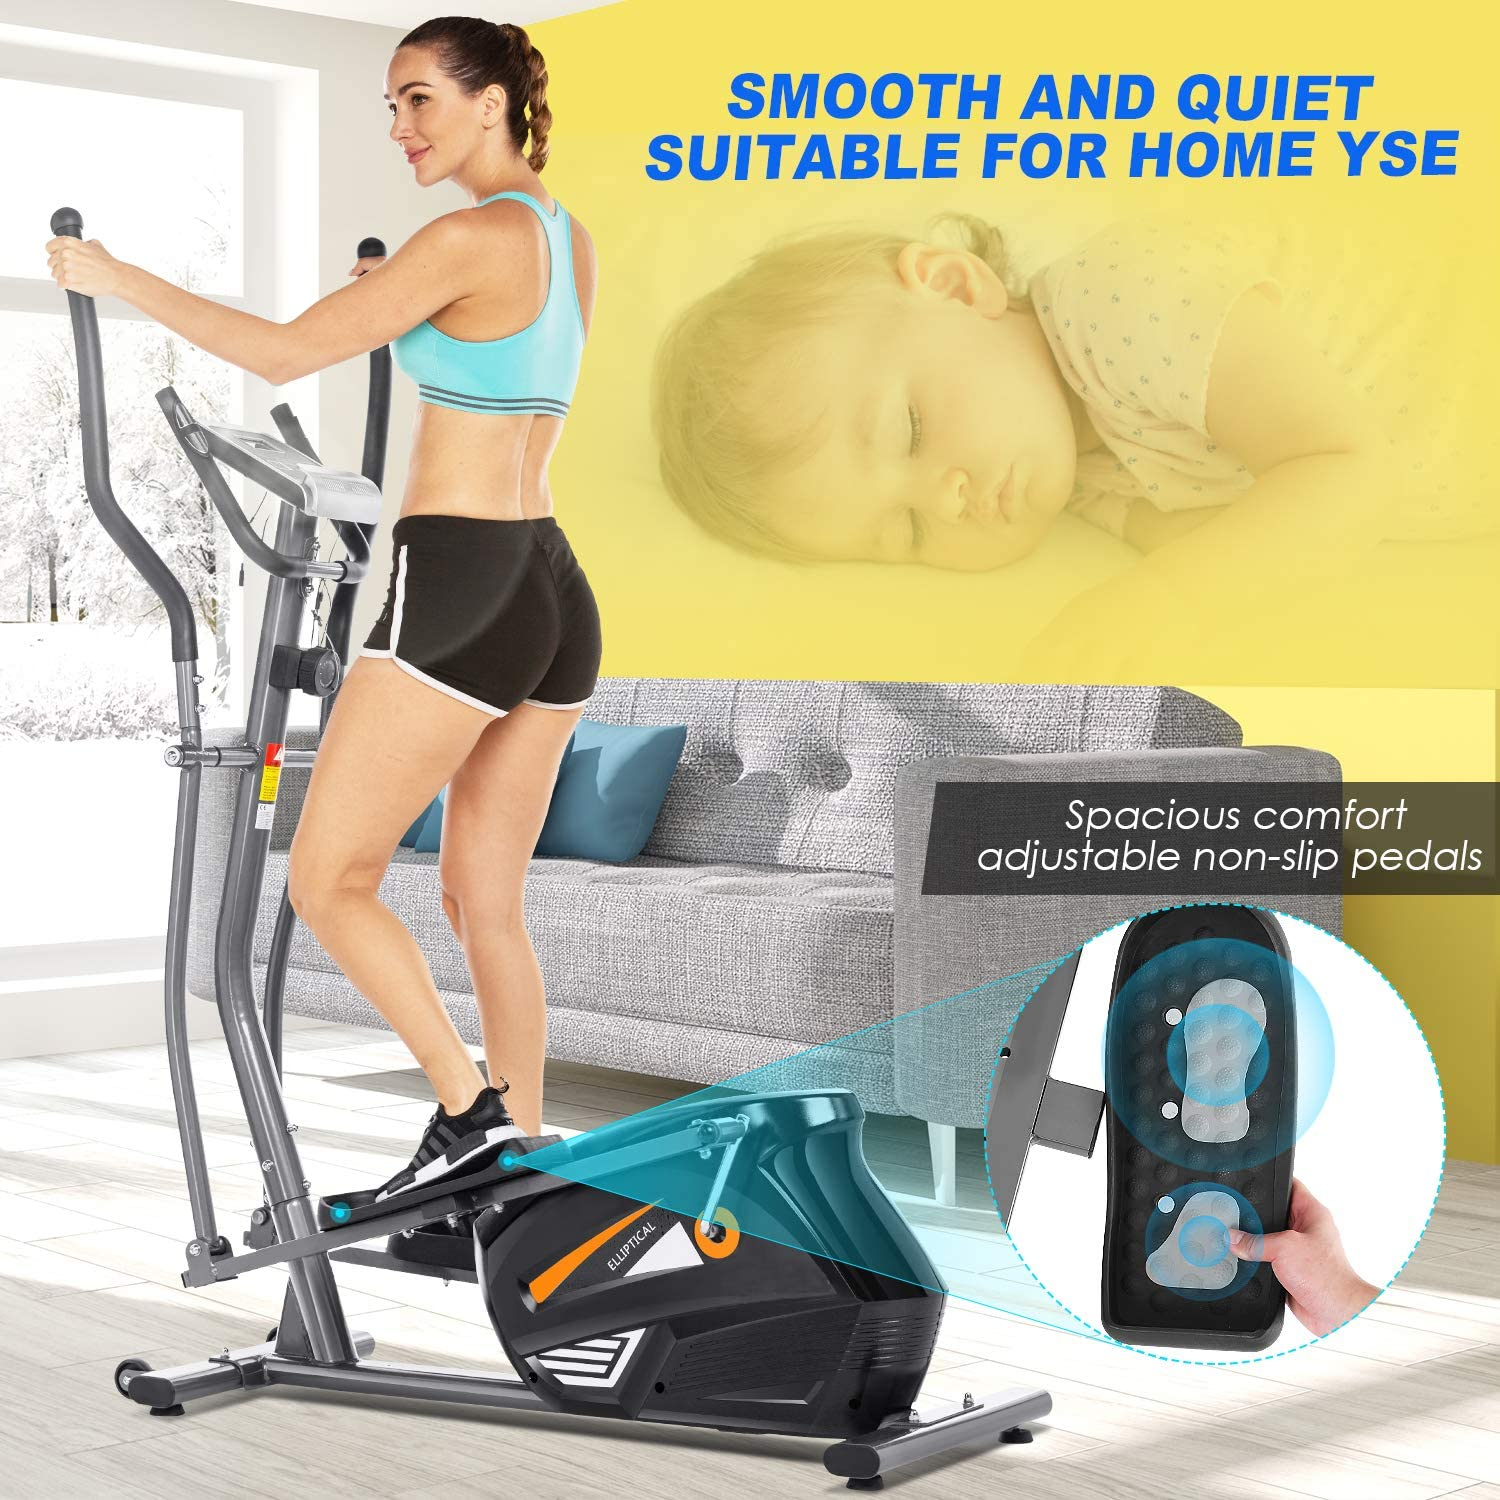 FUNMILY Eliptical Exercise Machine,Elliptical Cross Trainer for Home Use,Heavy-Duty/Gym Equipment for Indoor Workout /& Fitness with 10-Level Resistance/&Max User Weight:390lbs.